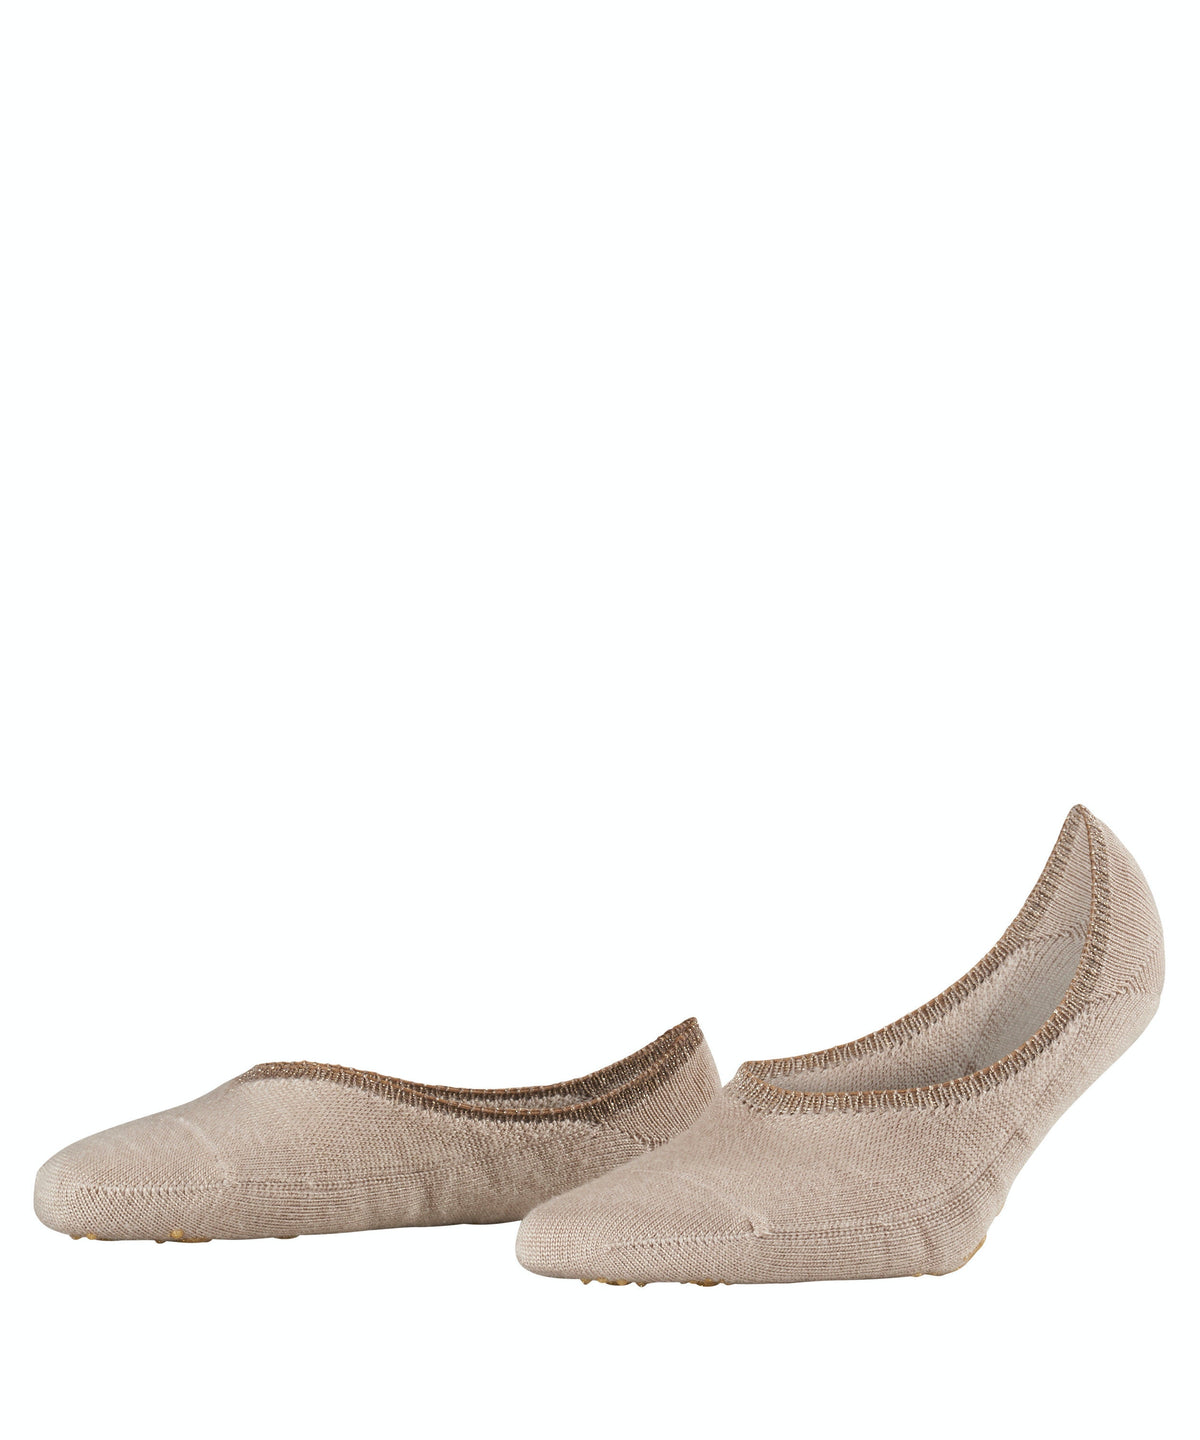 FALKE Ballerina Women No Show Socks